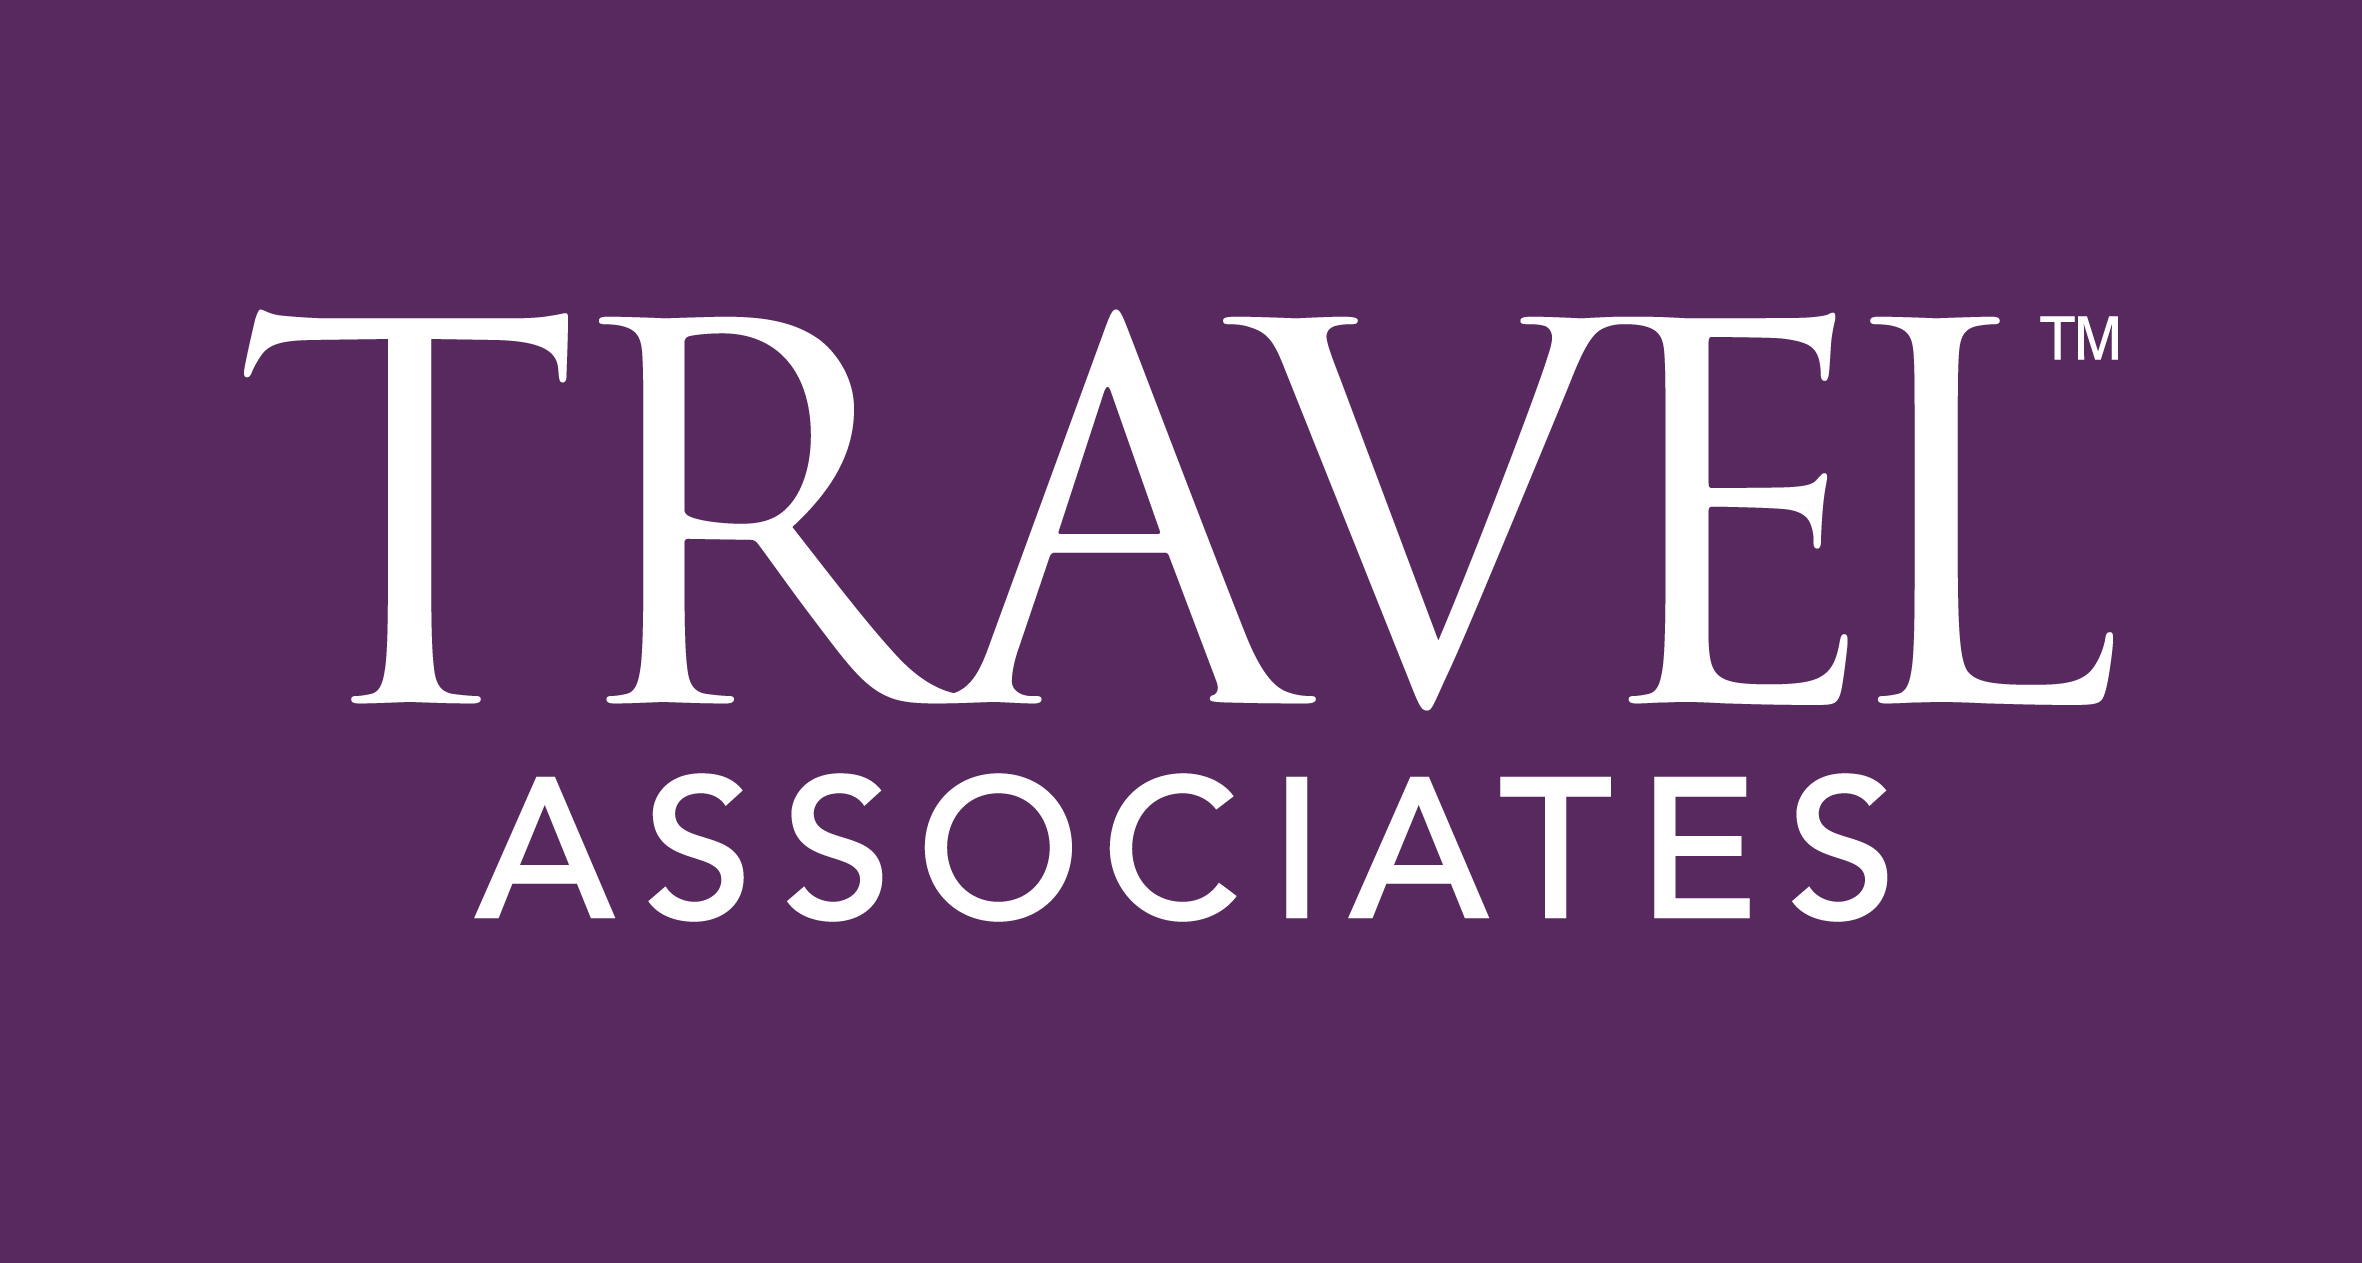 TRAVEL ASSOCIATES ROSALIE Logo